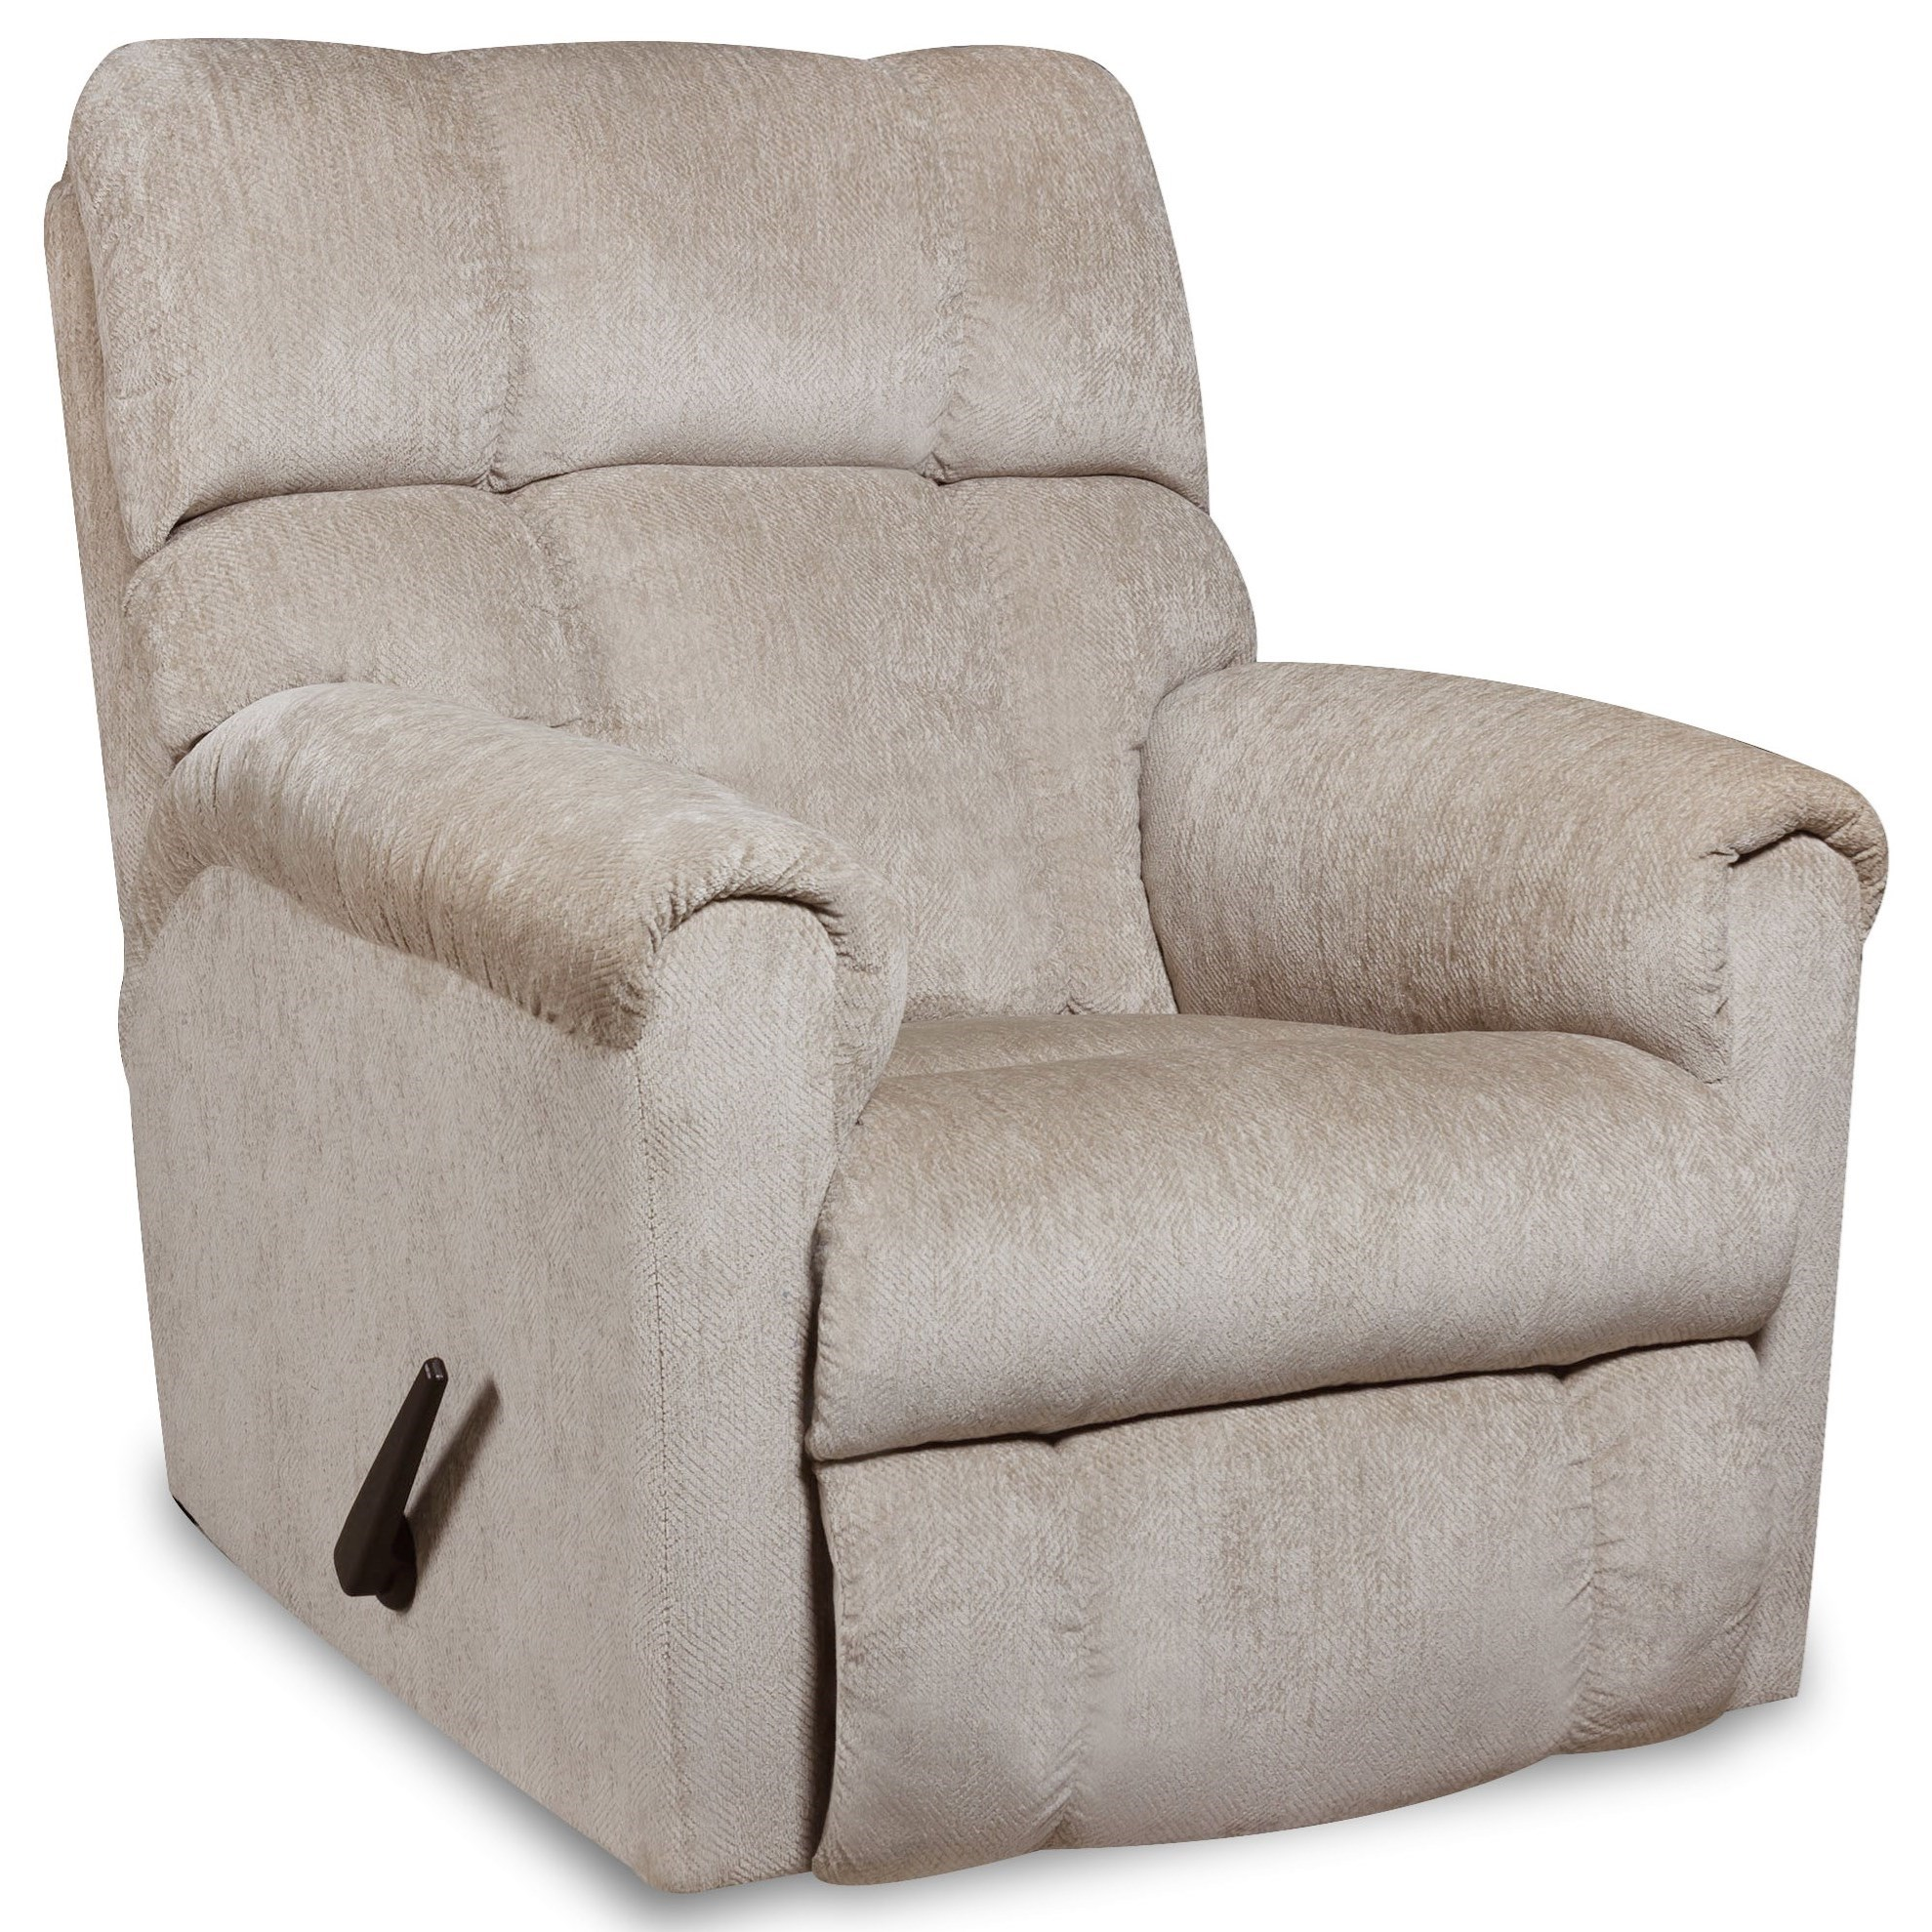 134 Chaise Recliner by HomeStretch at Story & Lee Furniture